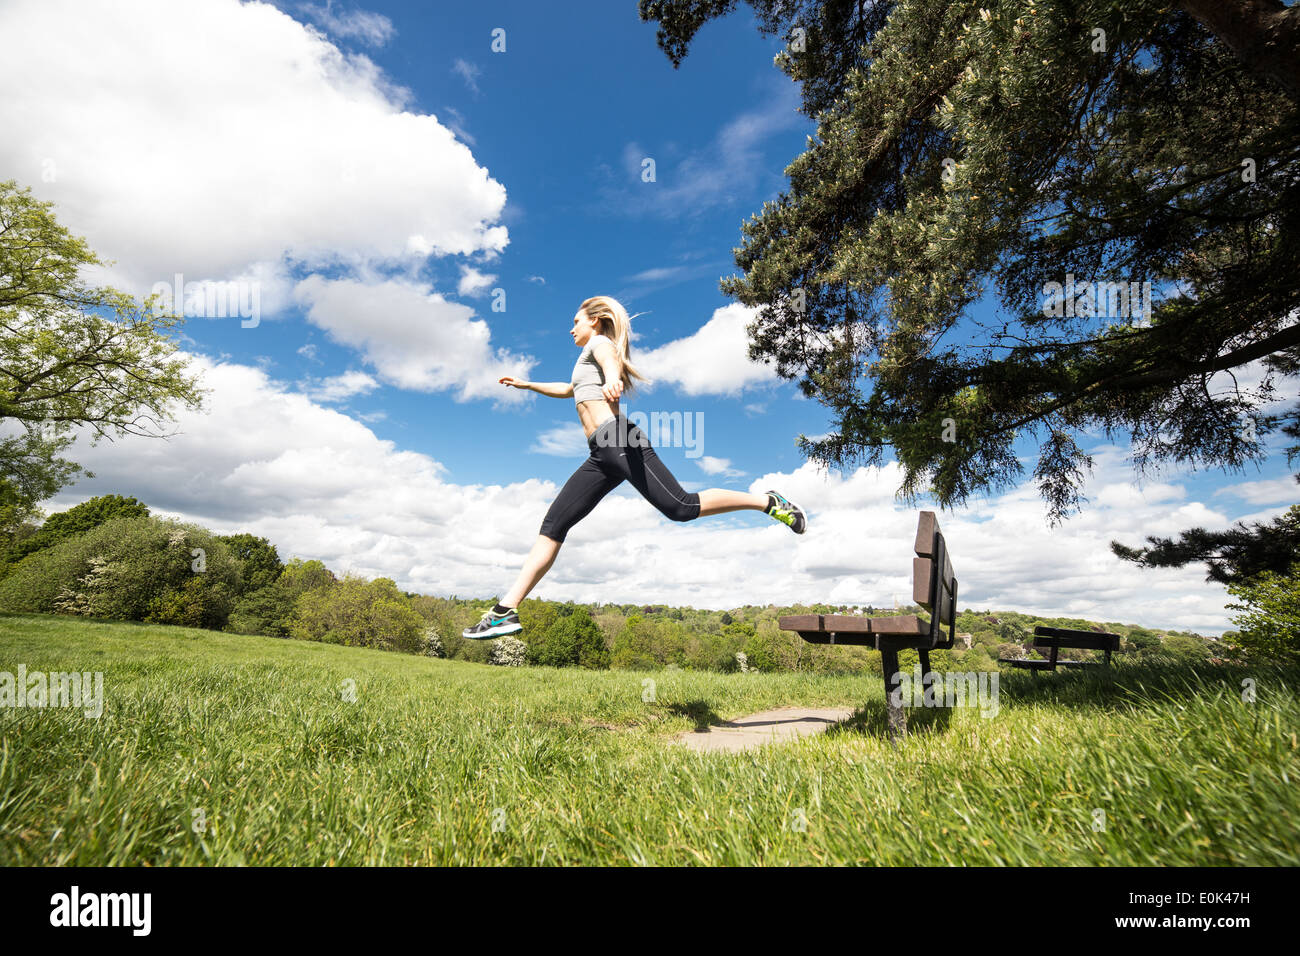 Blonde lady wearing black leggings and a grey crop top leaping from a bench on hampstead heath in the sunshine. - Stock Image